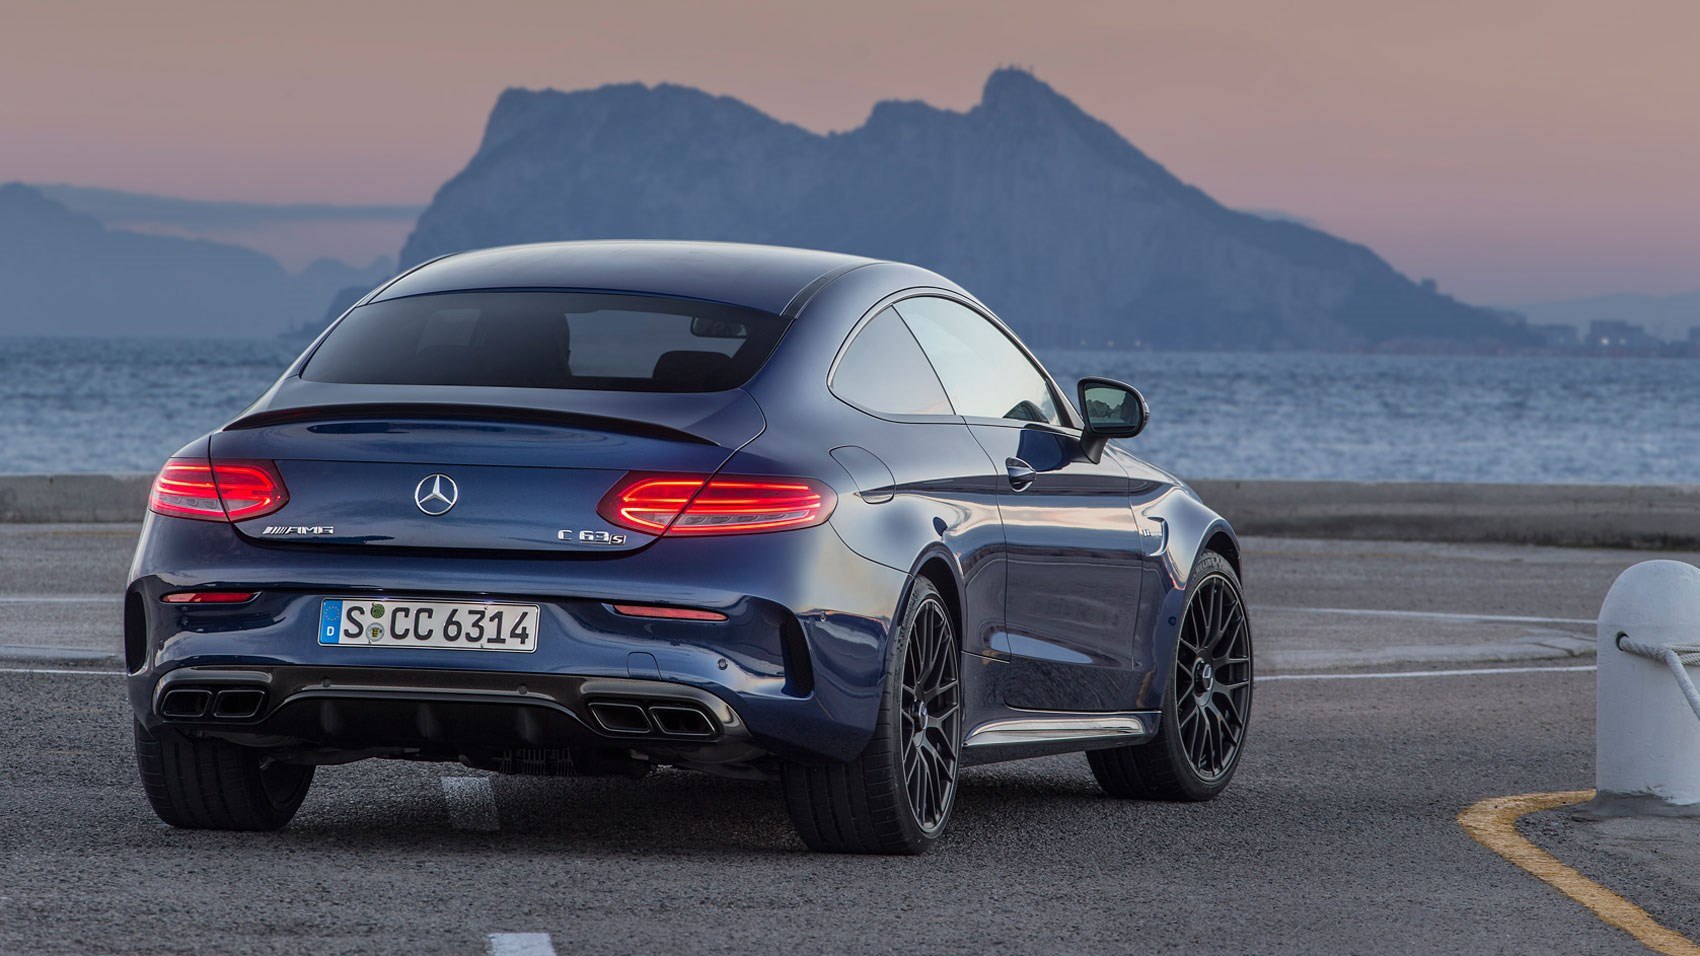 C63 Coupe is expected to outsell the saloon and estate variants